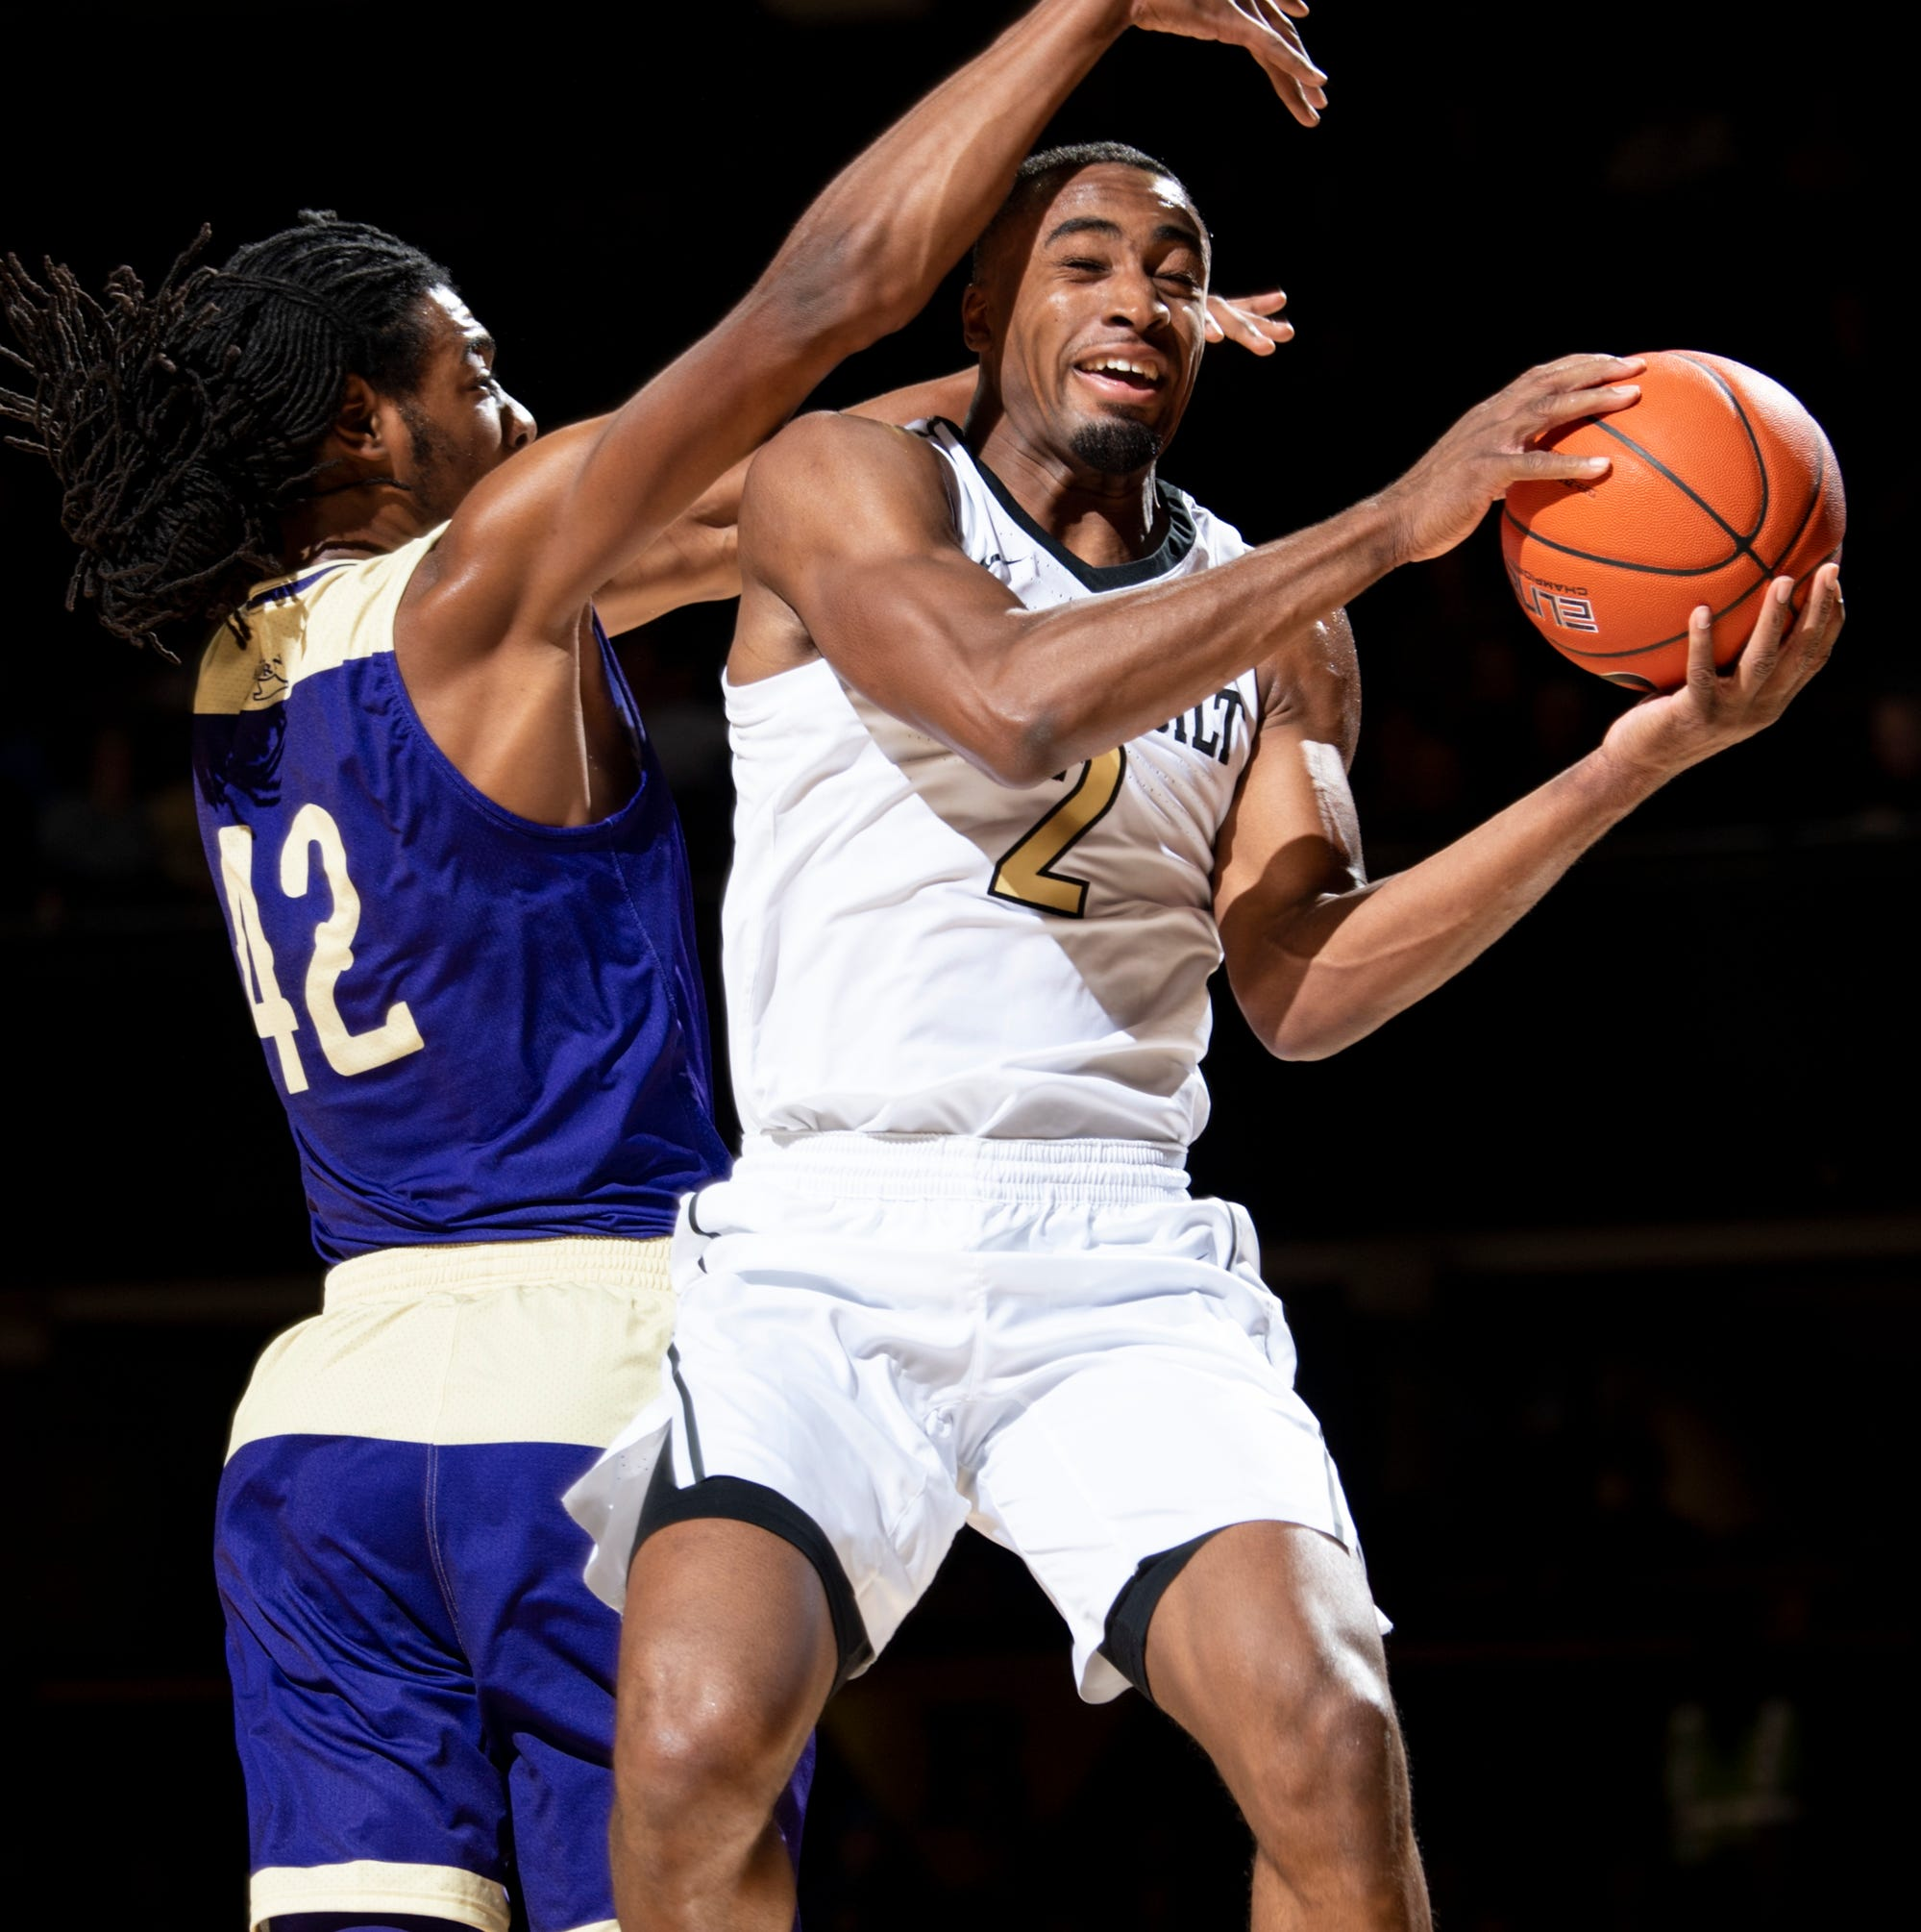 Vanderbilt basketball: Despite slow start, Commodores beat Alcorn State 79-54